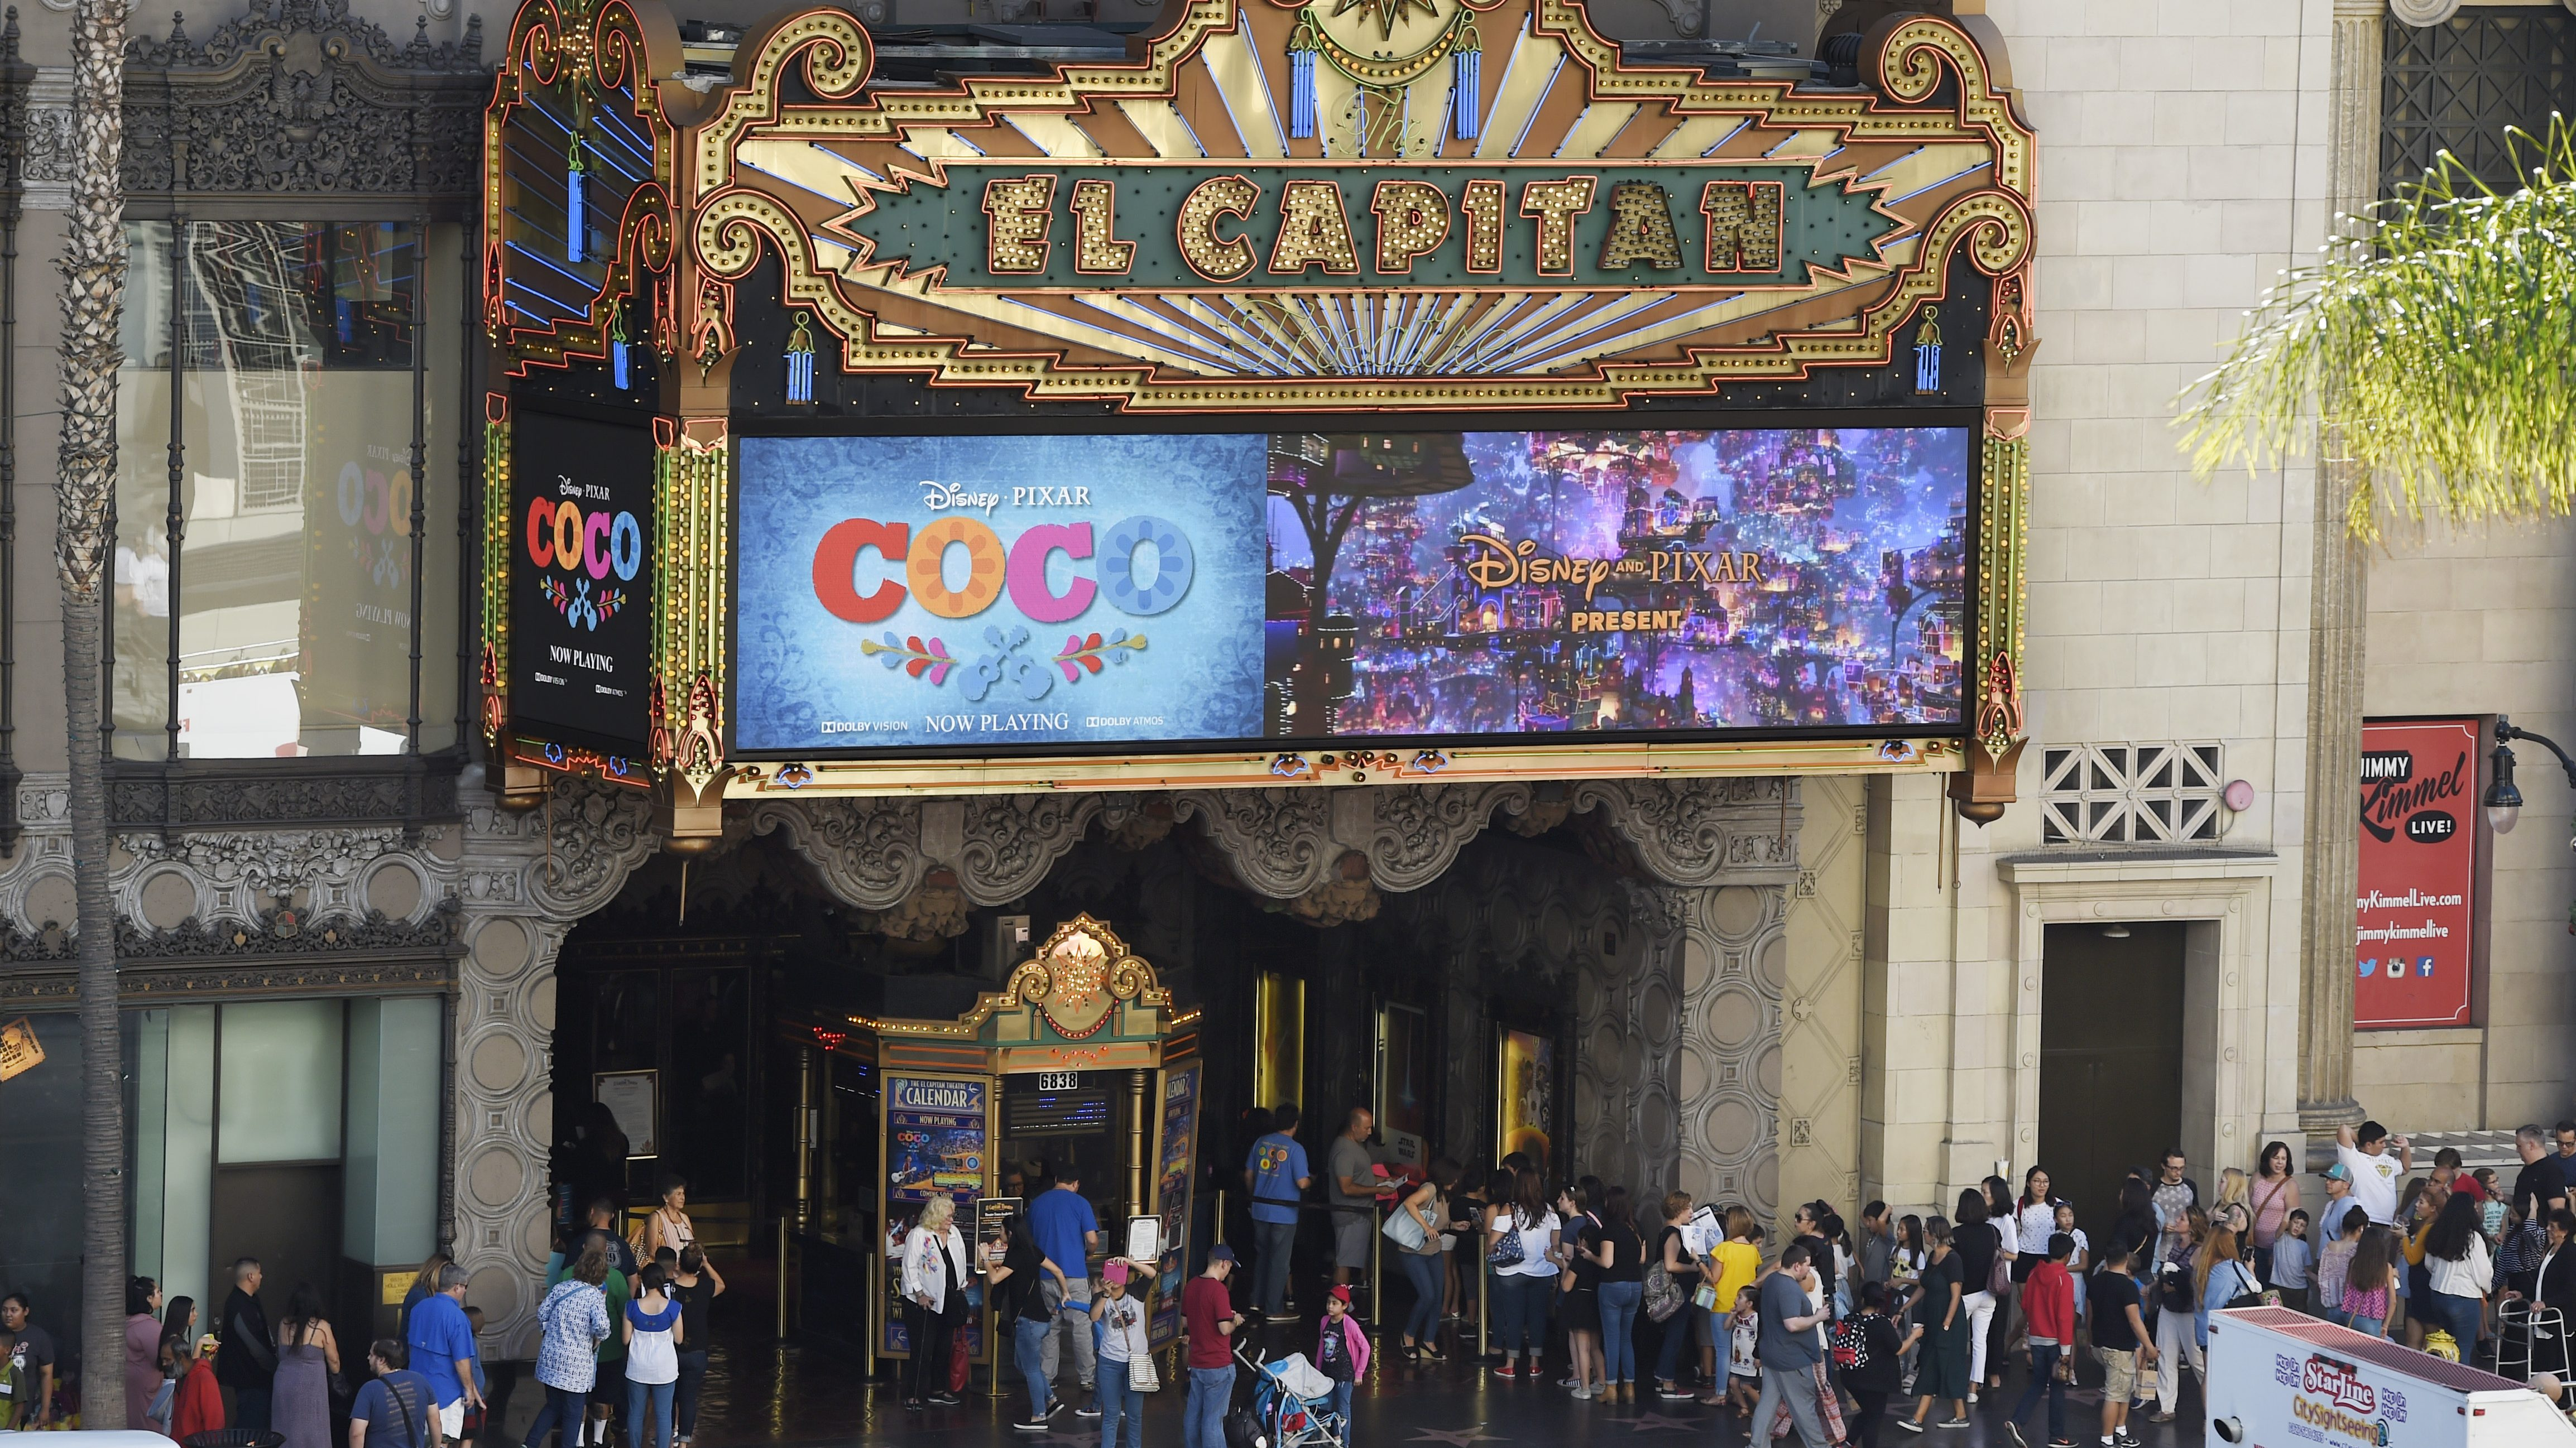 """HOLD FOR STORY -- Crowds line up at the El Capitan Theatre on Hollywood Boulevard for a screening of the Disney Pixar film """"Coco"""" on Wednesday, Nov. 22, 2017, in Los Angeles. (AP Photo/Chris Pizzello)"""